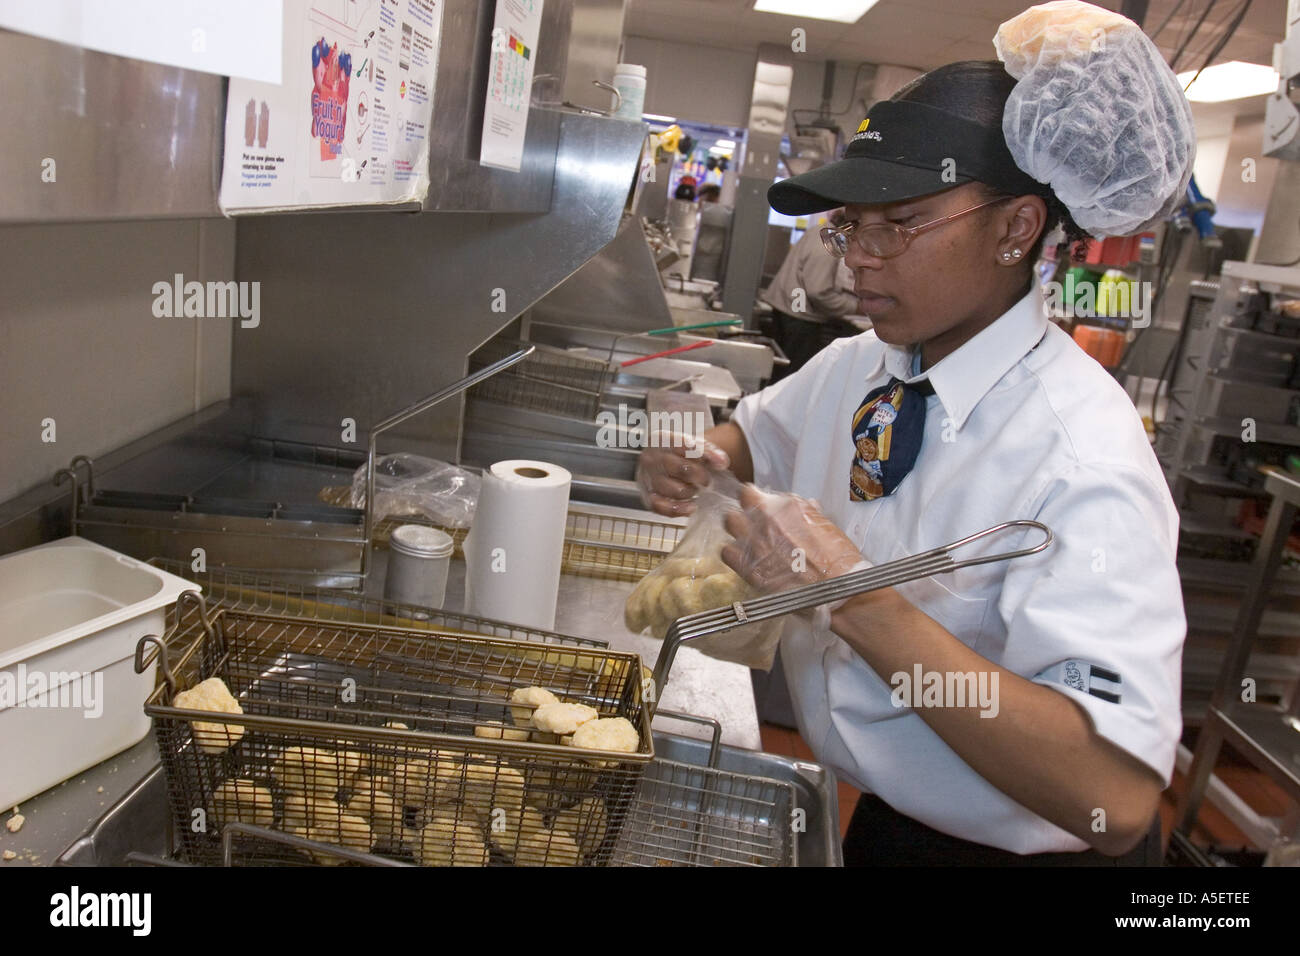 Worker at McDonalds Restaurant - Stock Image